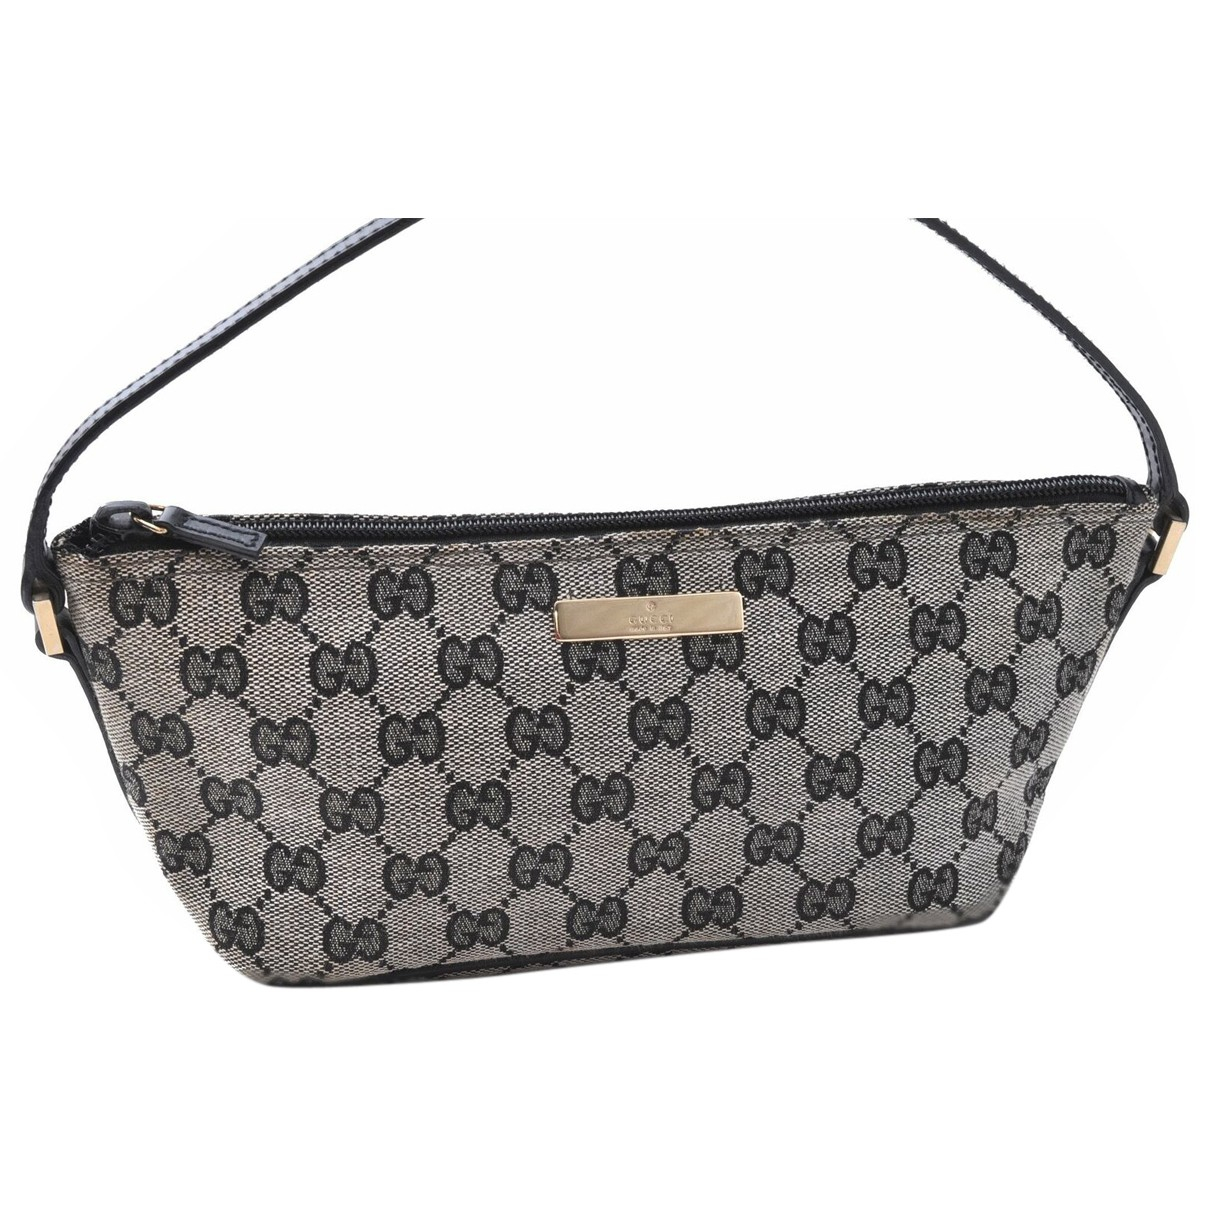 Gucci N Black Cloth Purses, wallet & cases for Women N